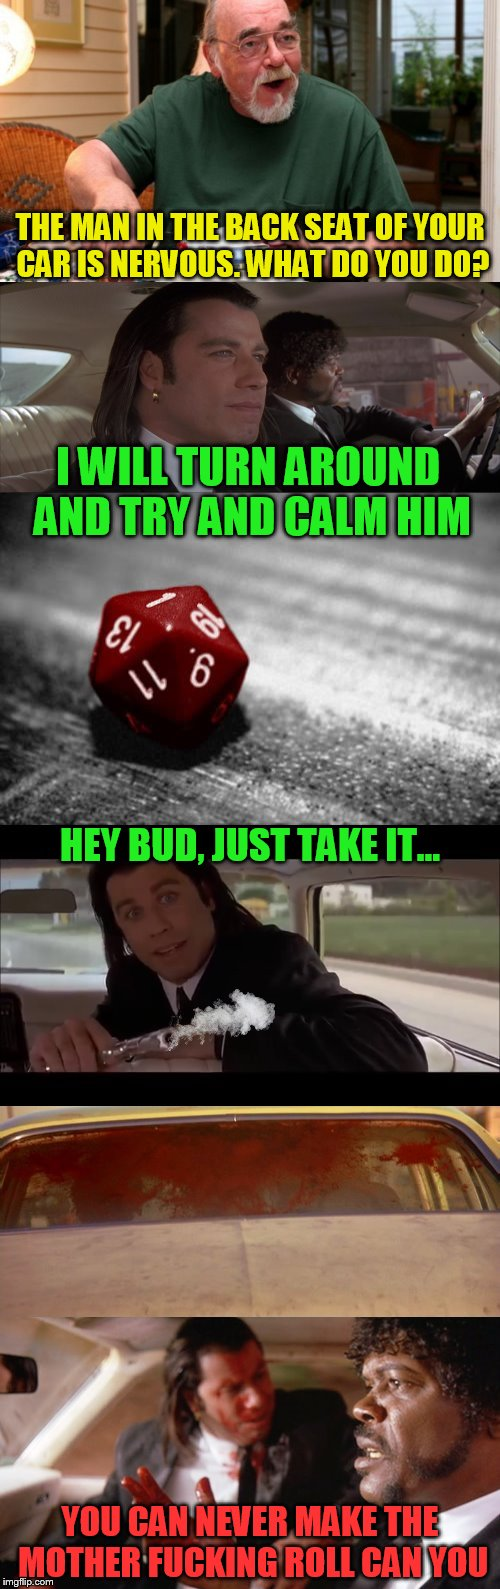 D&D Week, March 29th to April 6th. Dungeons & Dragons. ( TheRoyalPlutonian Event ) | THE MAN IN THE BACK SEAT OF YOUR CAR IS NERVOUS. WHAT DO YOU DO? I WILL TURN AROUND AND TRY AND CALM HIM HEY BUD, JUST TAKE IT... YOU CAN NE | image tagged in memes,dungeons and dragons week,dungeons and dragons,dd,pulp fiction,die roll | made w/ Imgflip meme maker